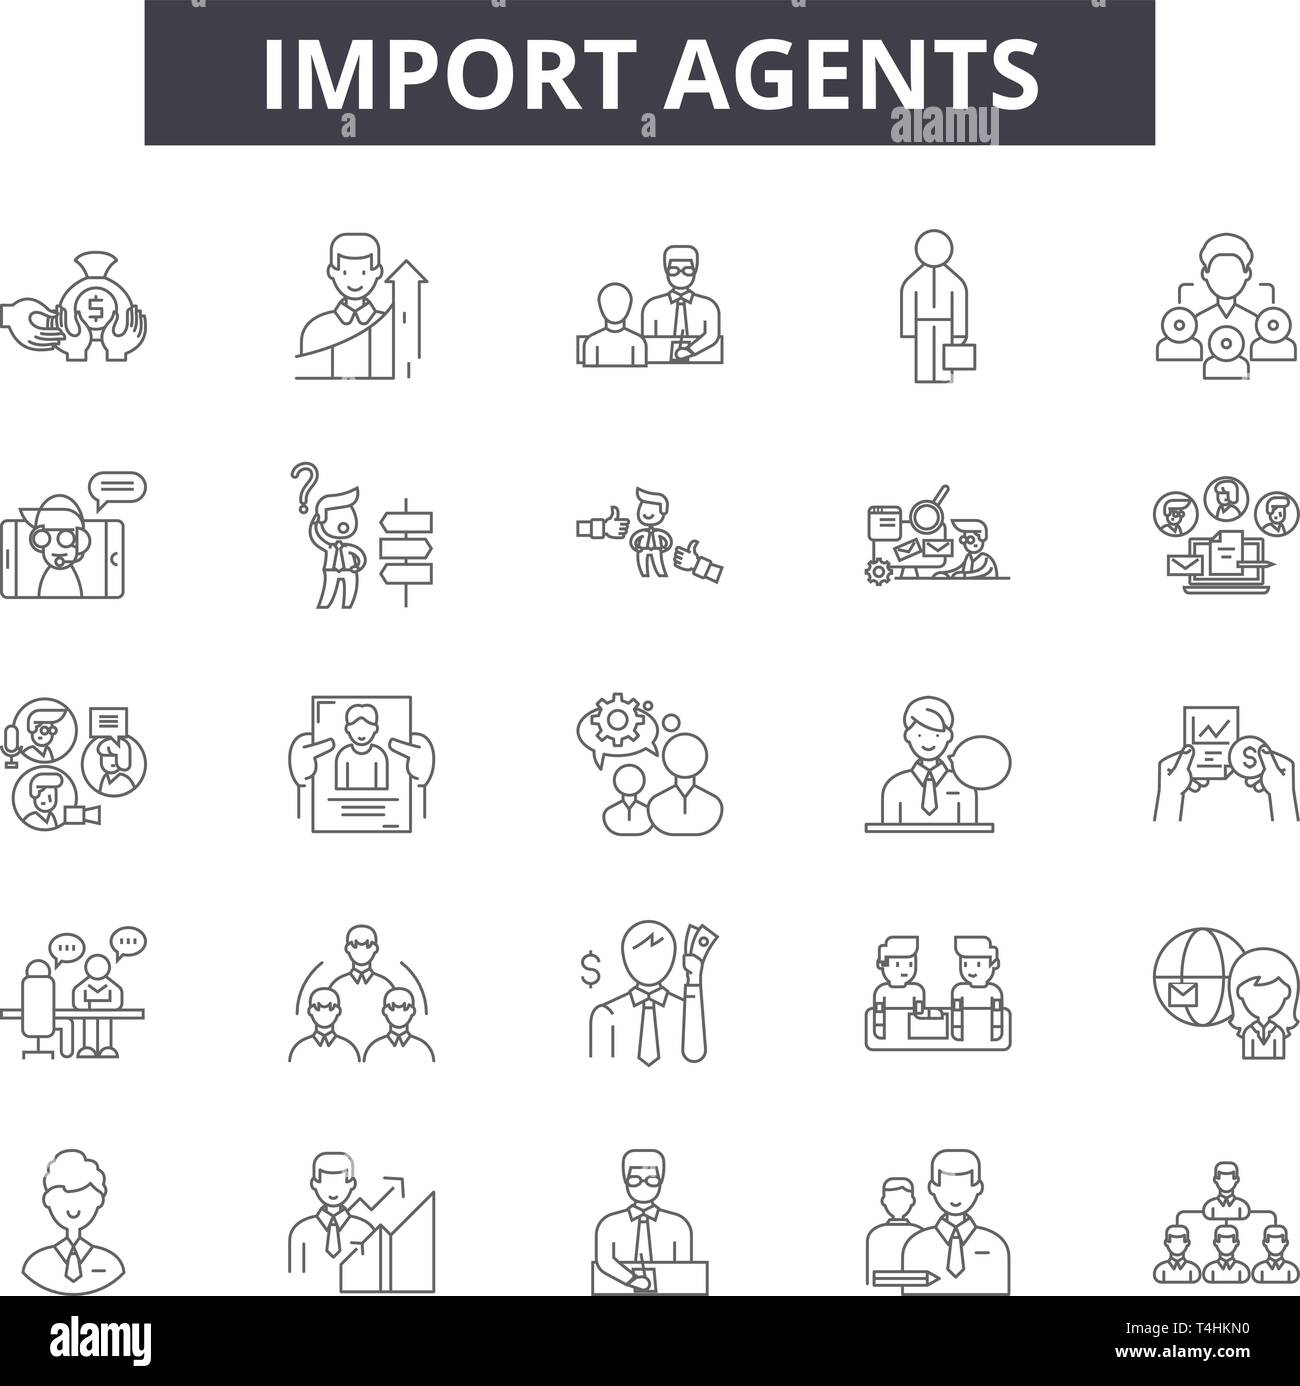 Import agents line icons, signs set, vector. Import agents outline concept illustration: agent,transportation,export,delivery,shipping,cargo,internati - Stock Vector